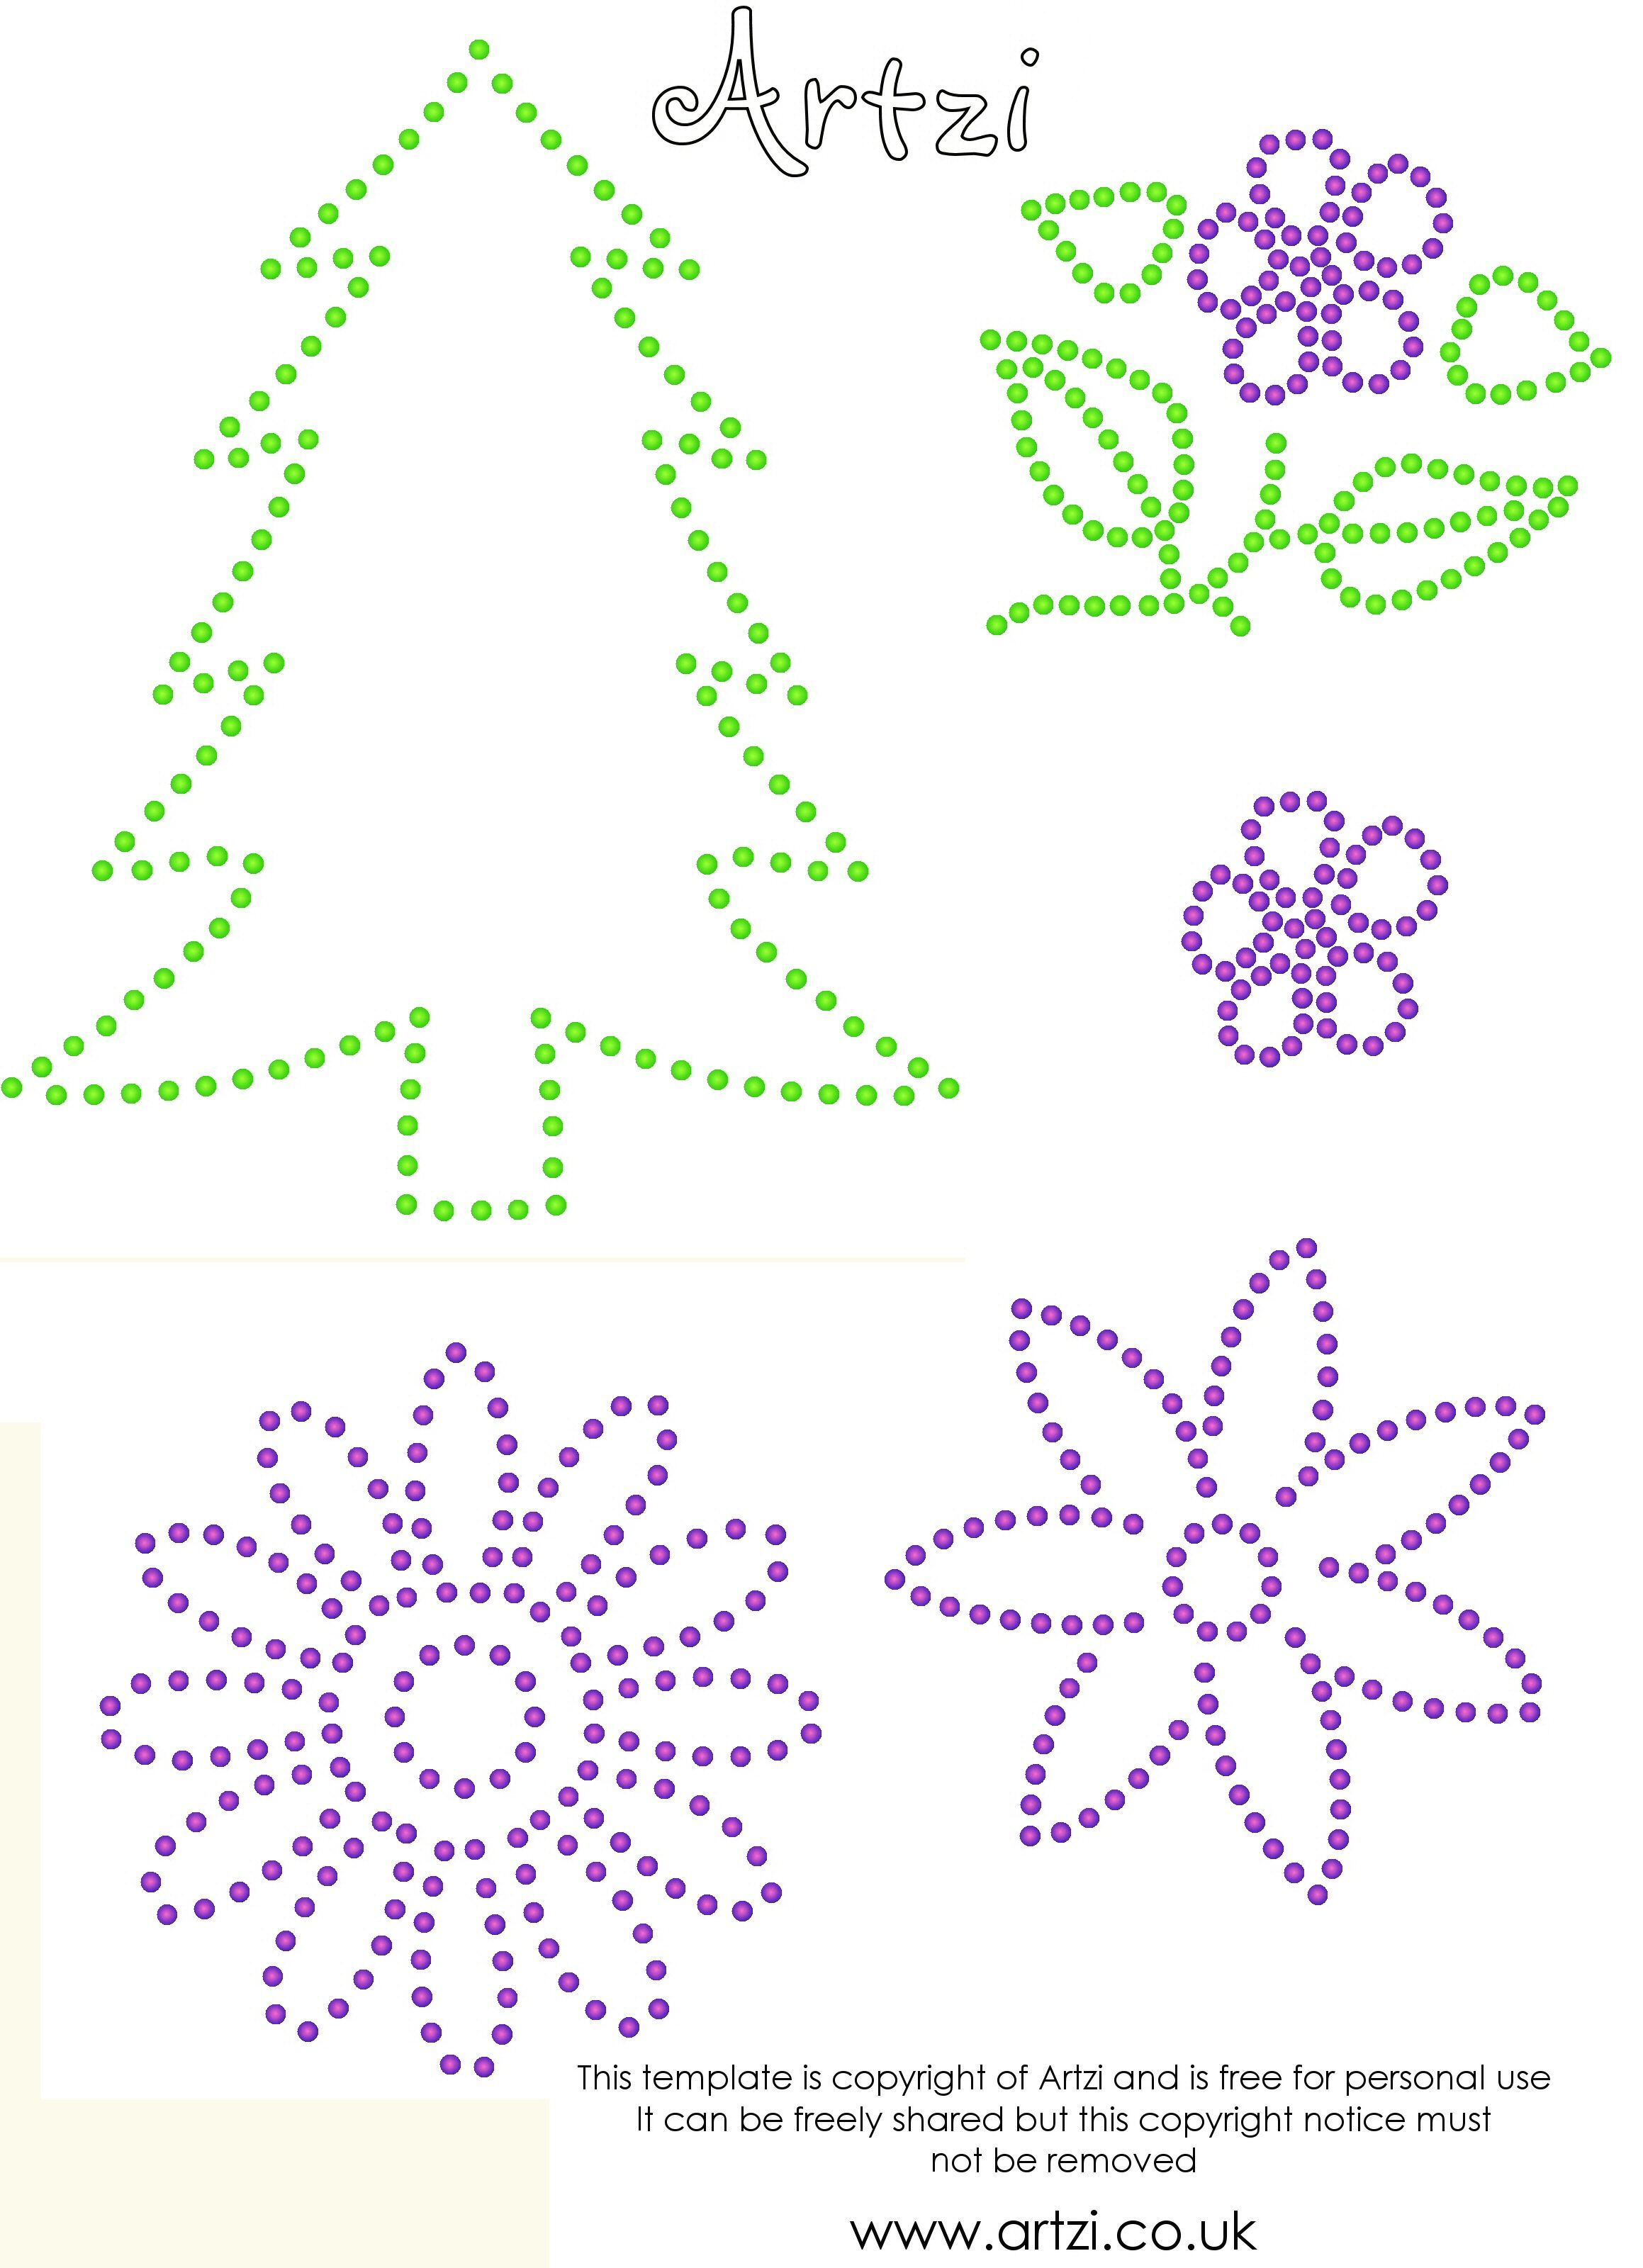 Western free rhinestone template downloads | download the gsd file.